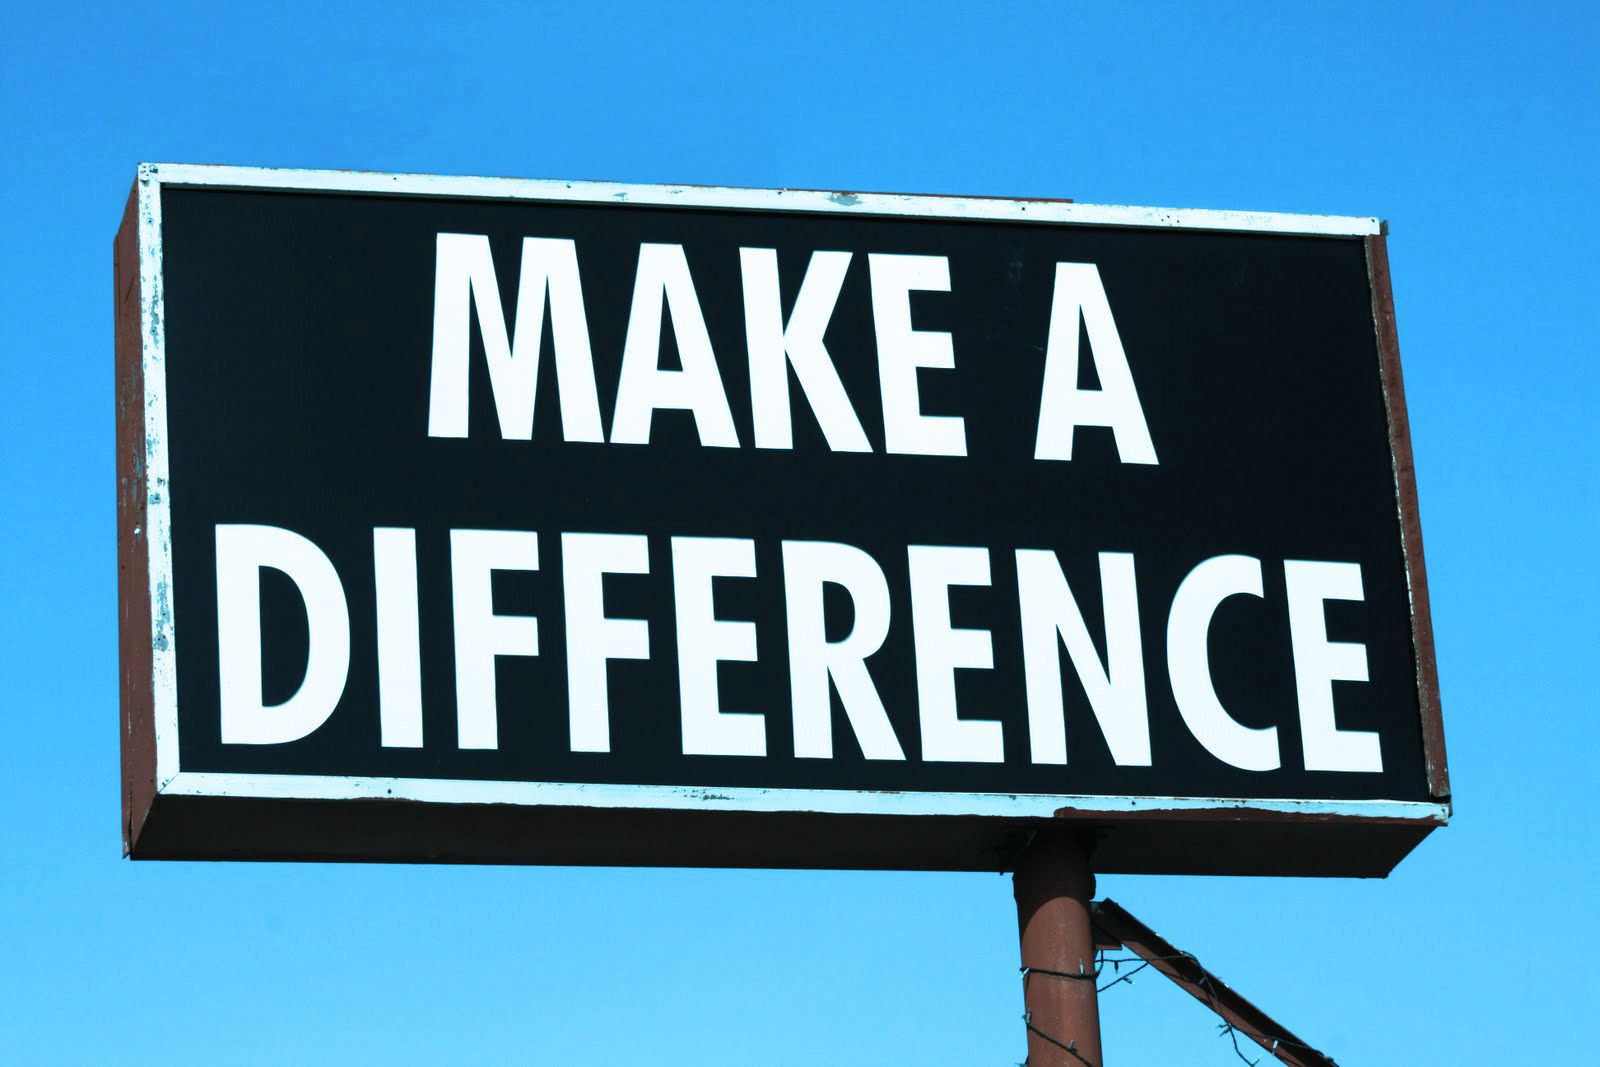 make a difference sign Commercialization Aint a Bad Word: Why EDM Going Mainstream is OK